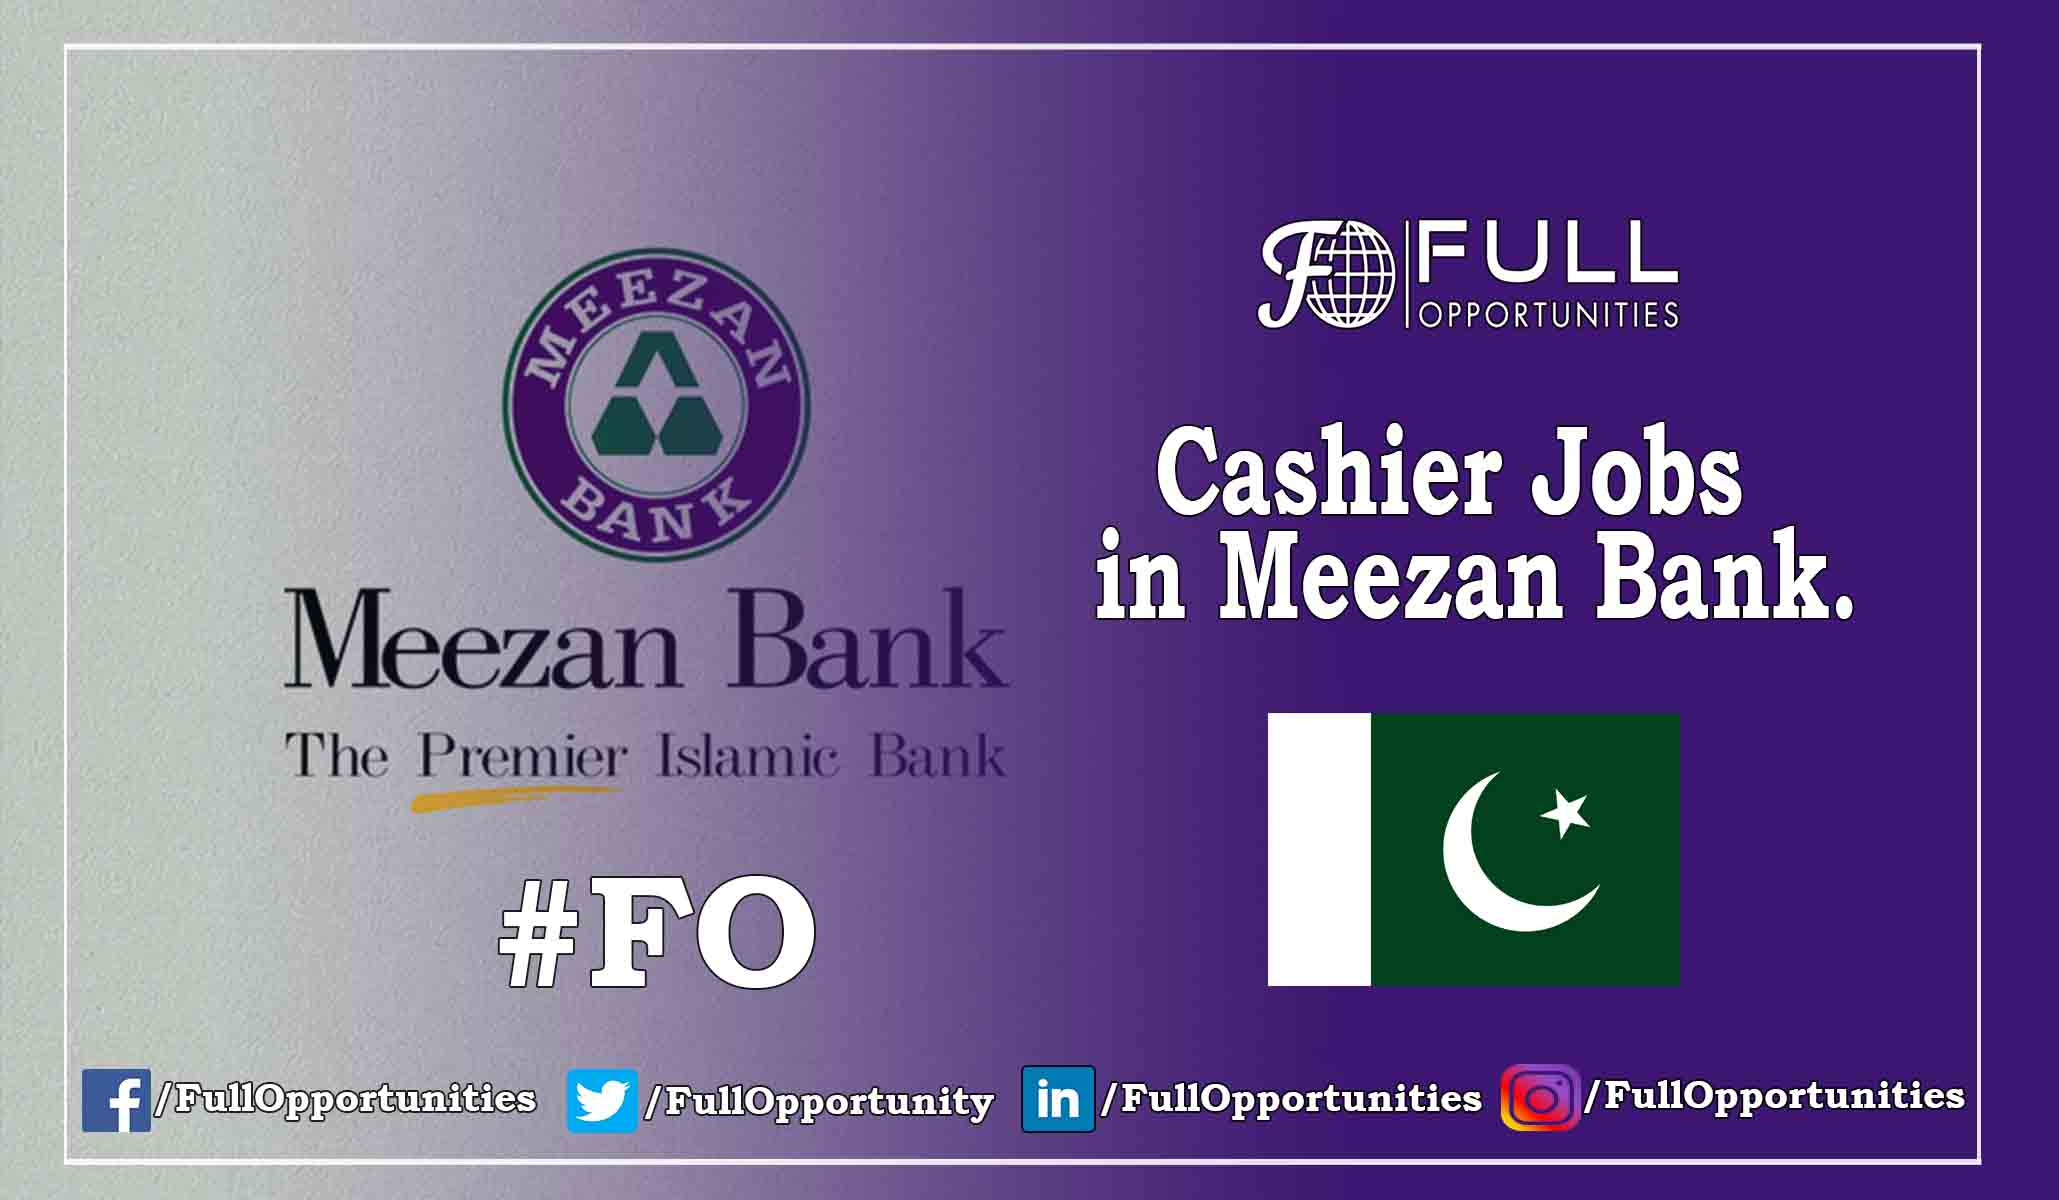 Cashier Jobs in Meezan Bank